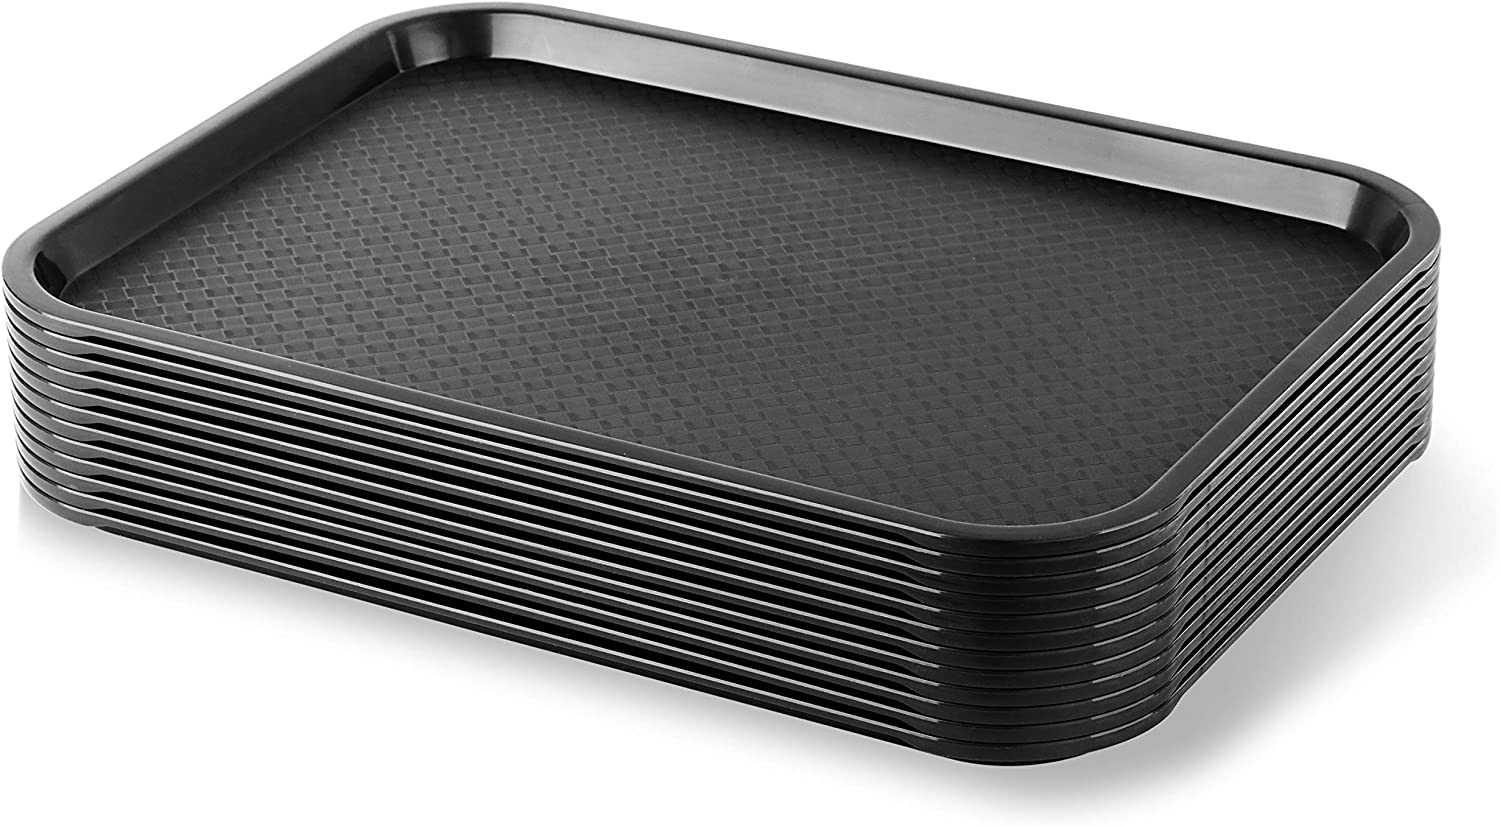 New Star Foodservice 24517 Black Plastic Fast Food Tray, 12 by 16-Inch, Set of 12